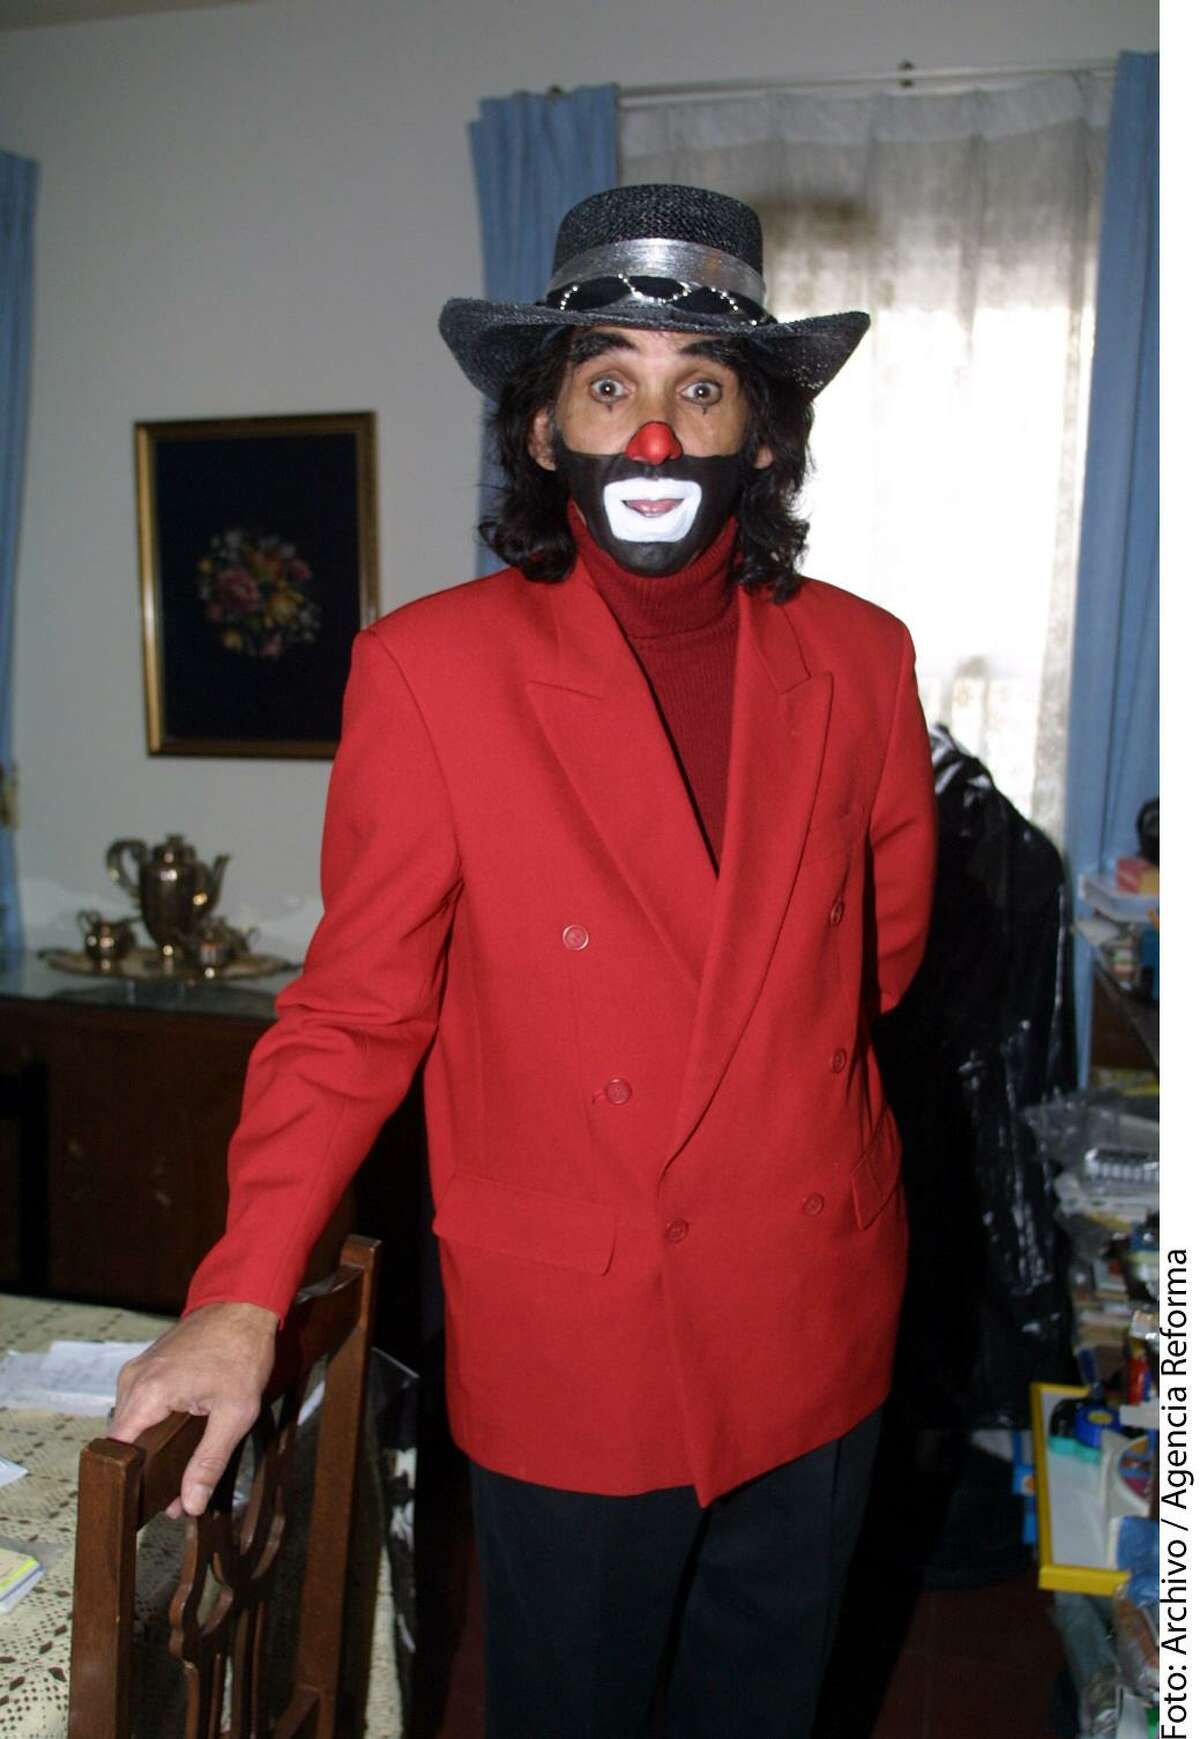 Mexican singer and actor Ricardo Gonzalez, known as Cepillin is pictured in this 2005 file photo.